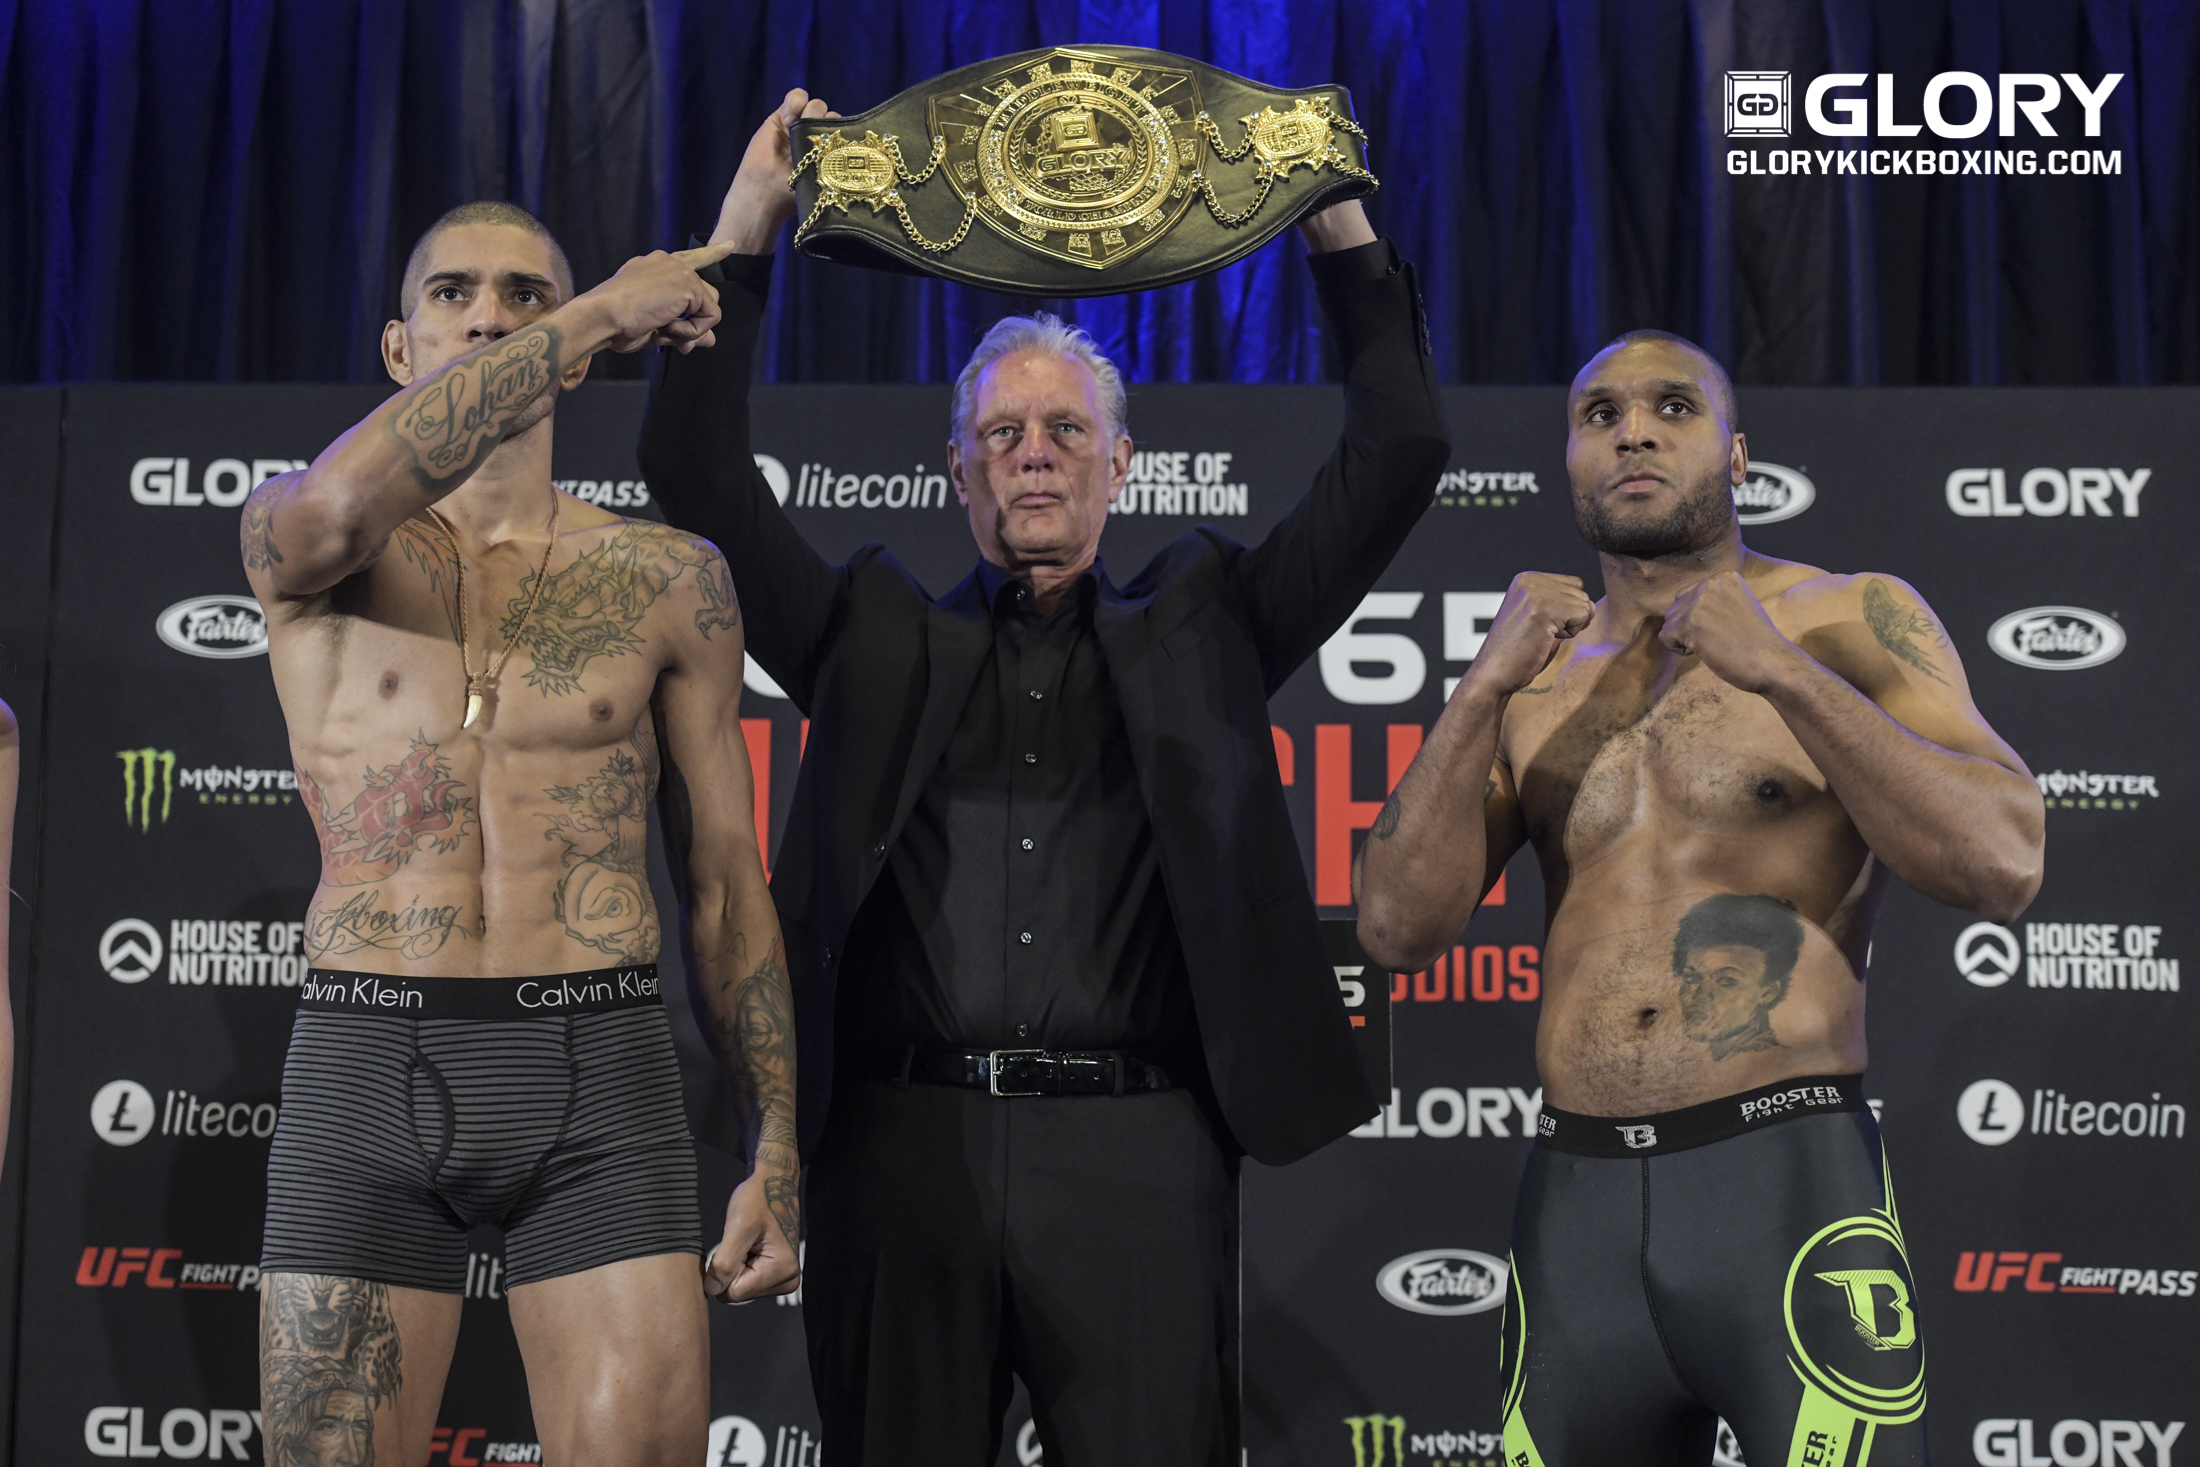 5df66c56403e GLORY 65: Utrecht Weigh-in Results